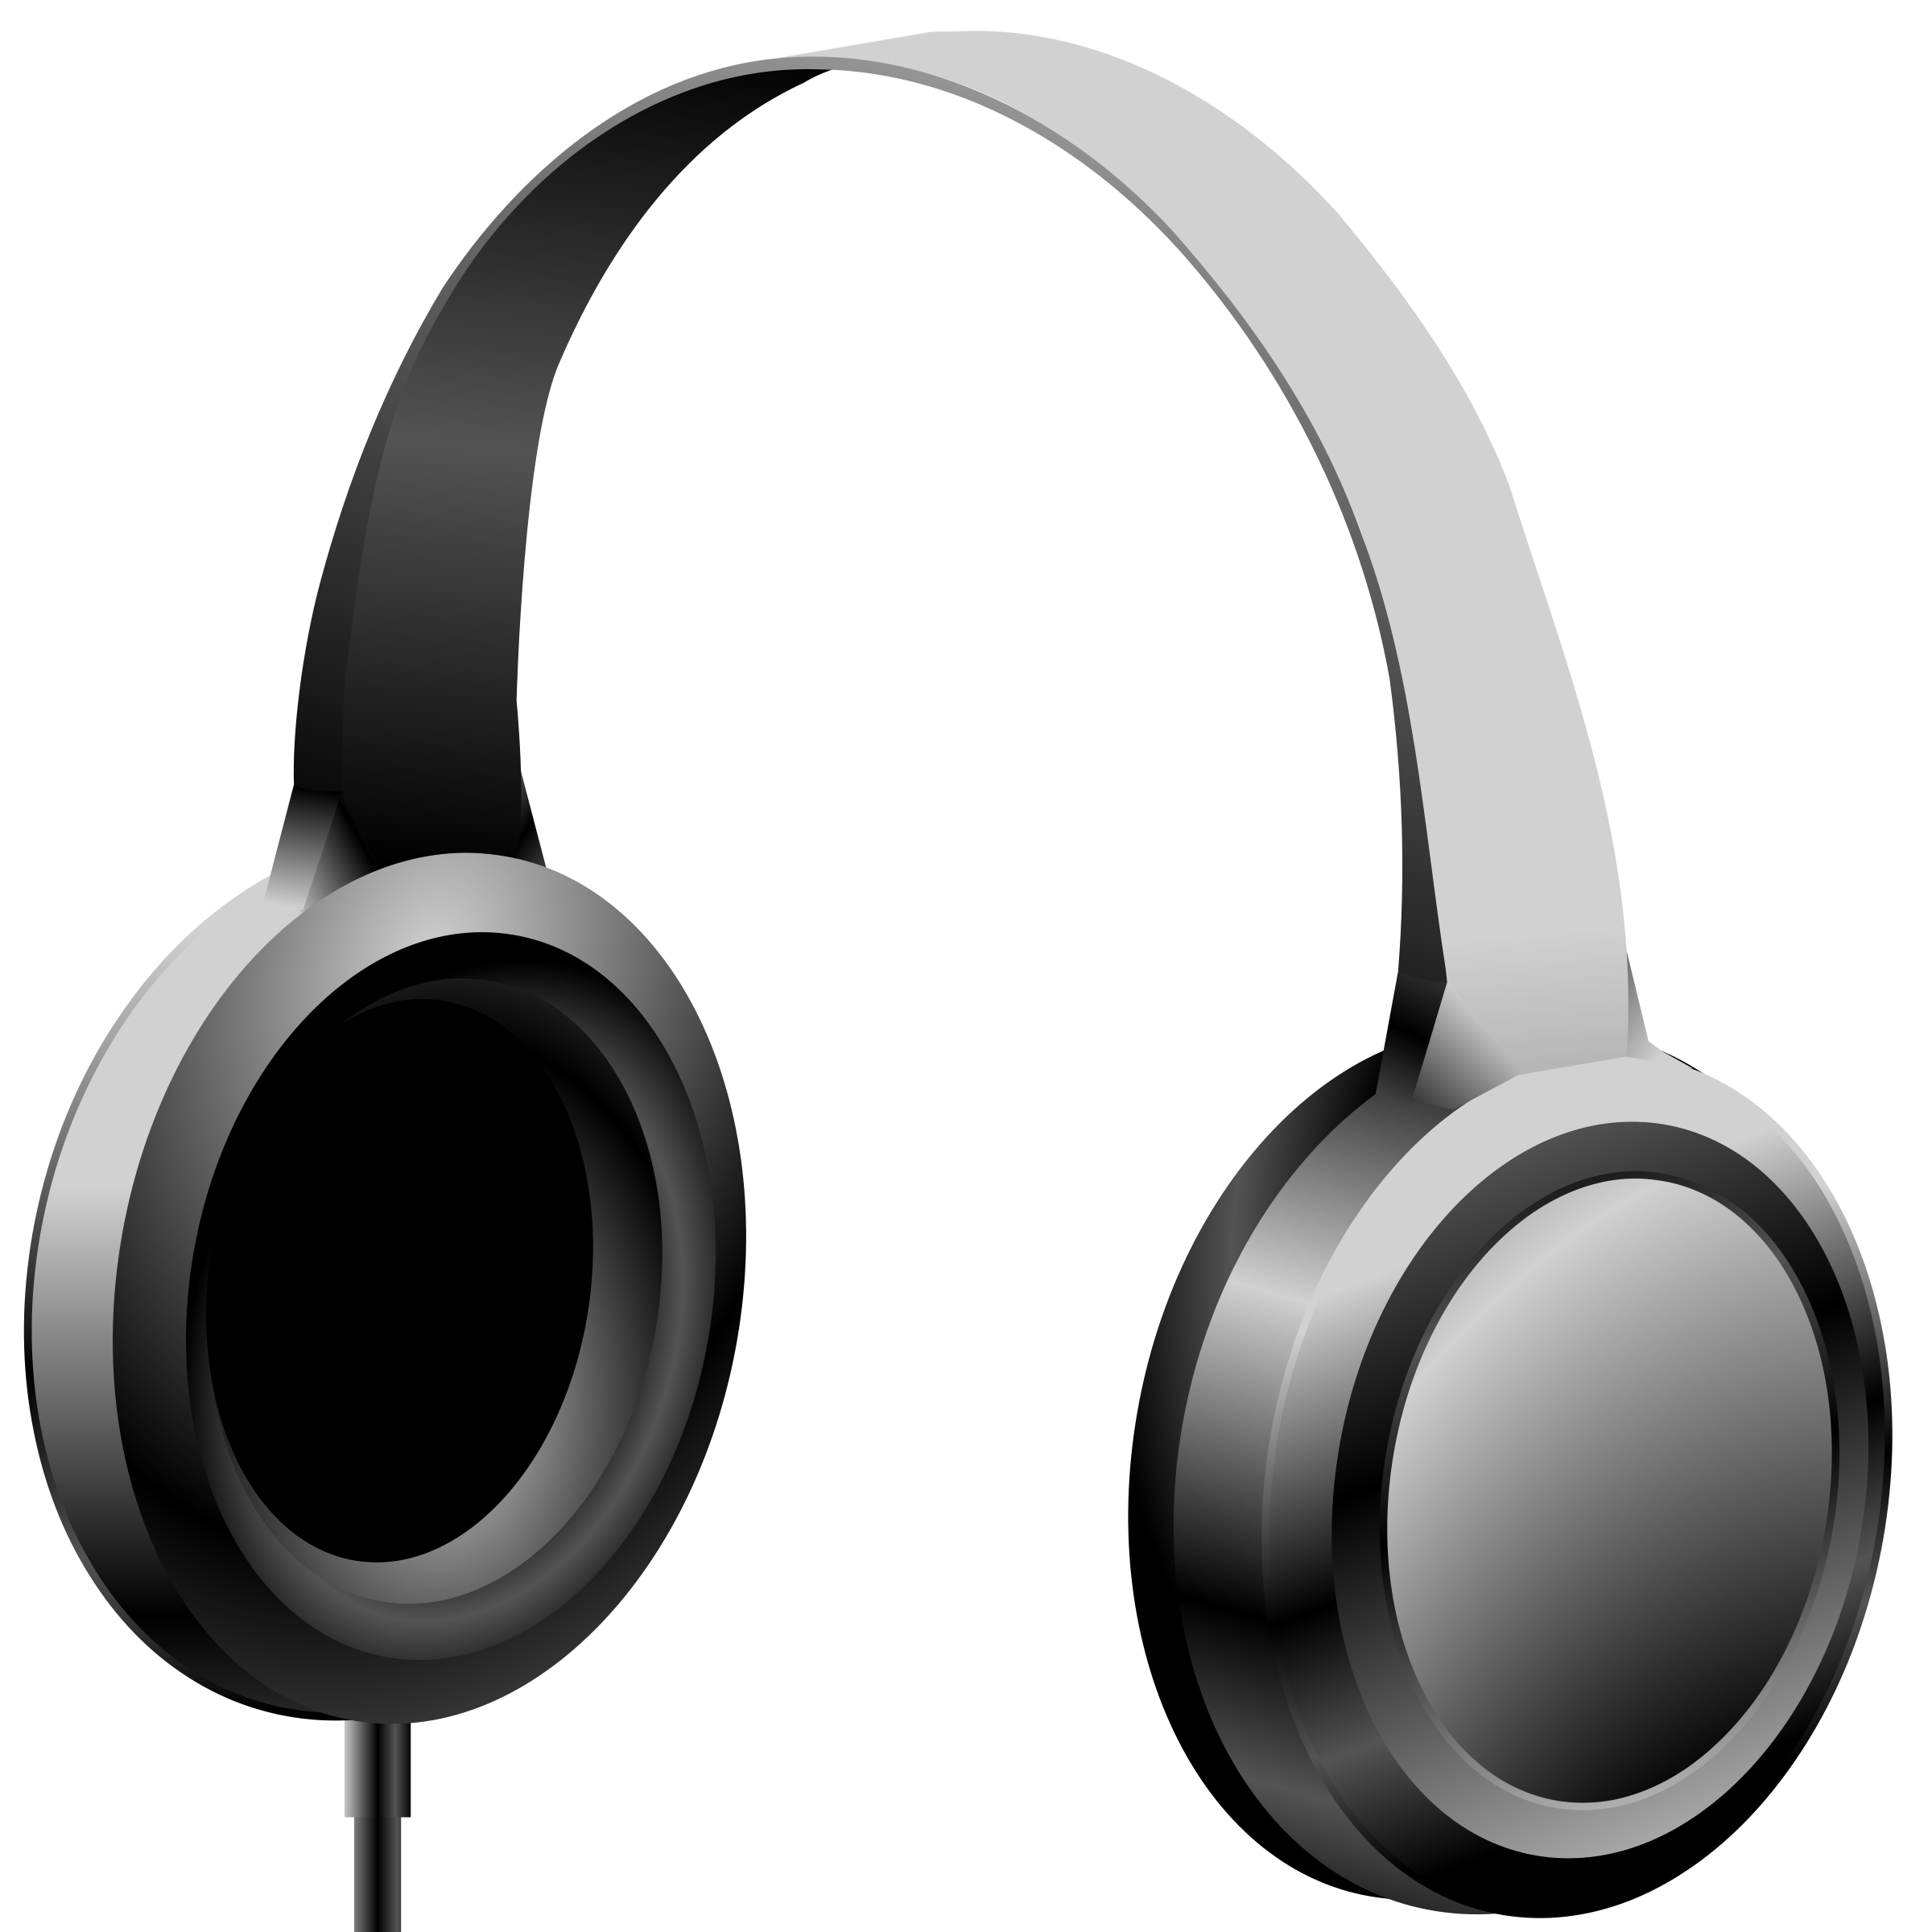 2400x2400 Headphones Clipart Transparent